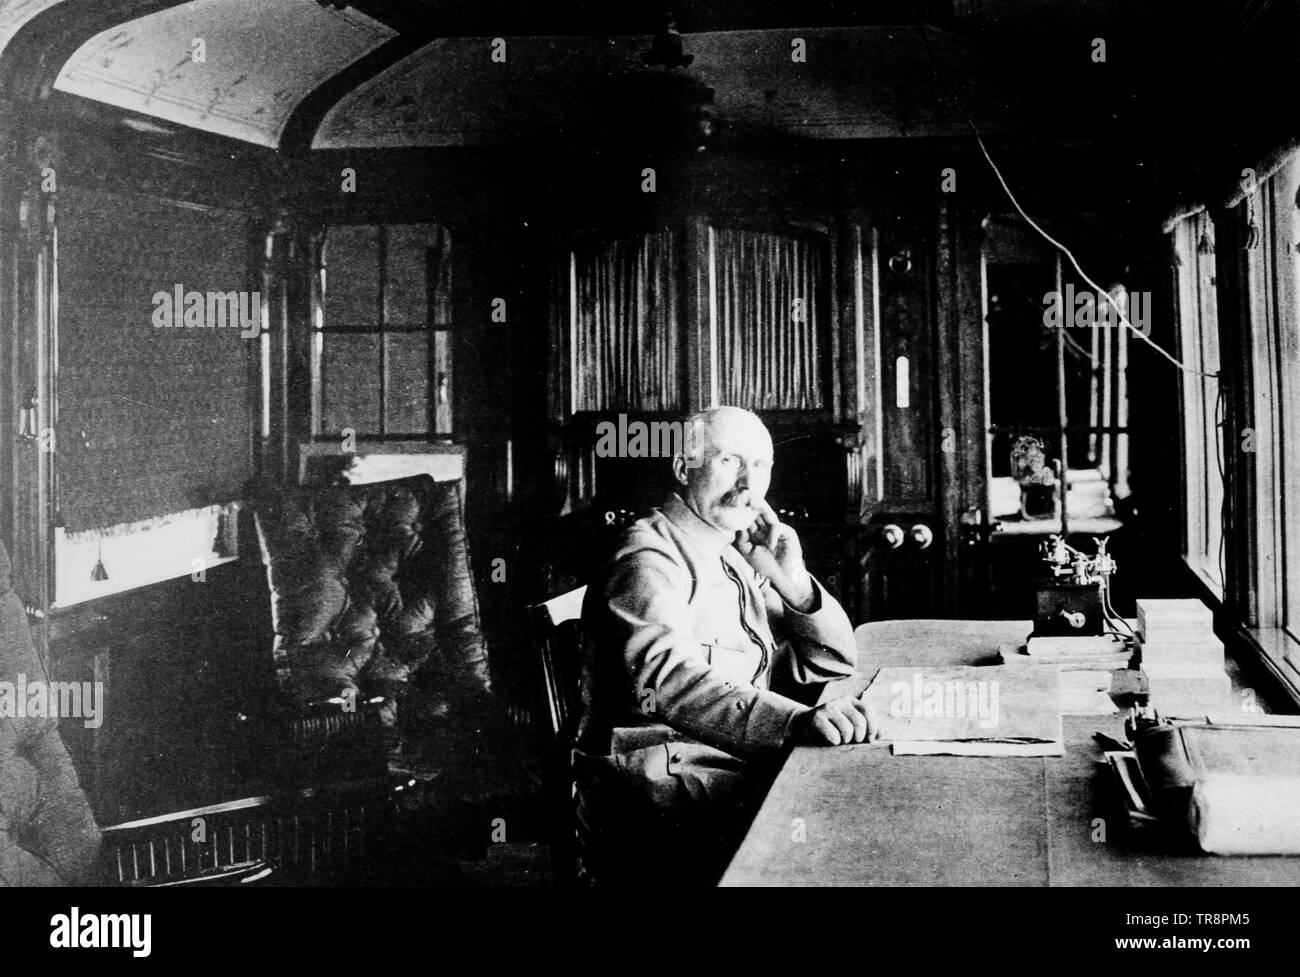 henri-philippe-omer petain, french general and politician - Stock Image